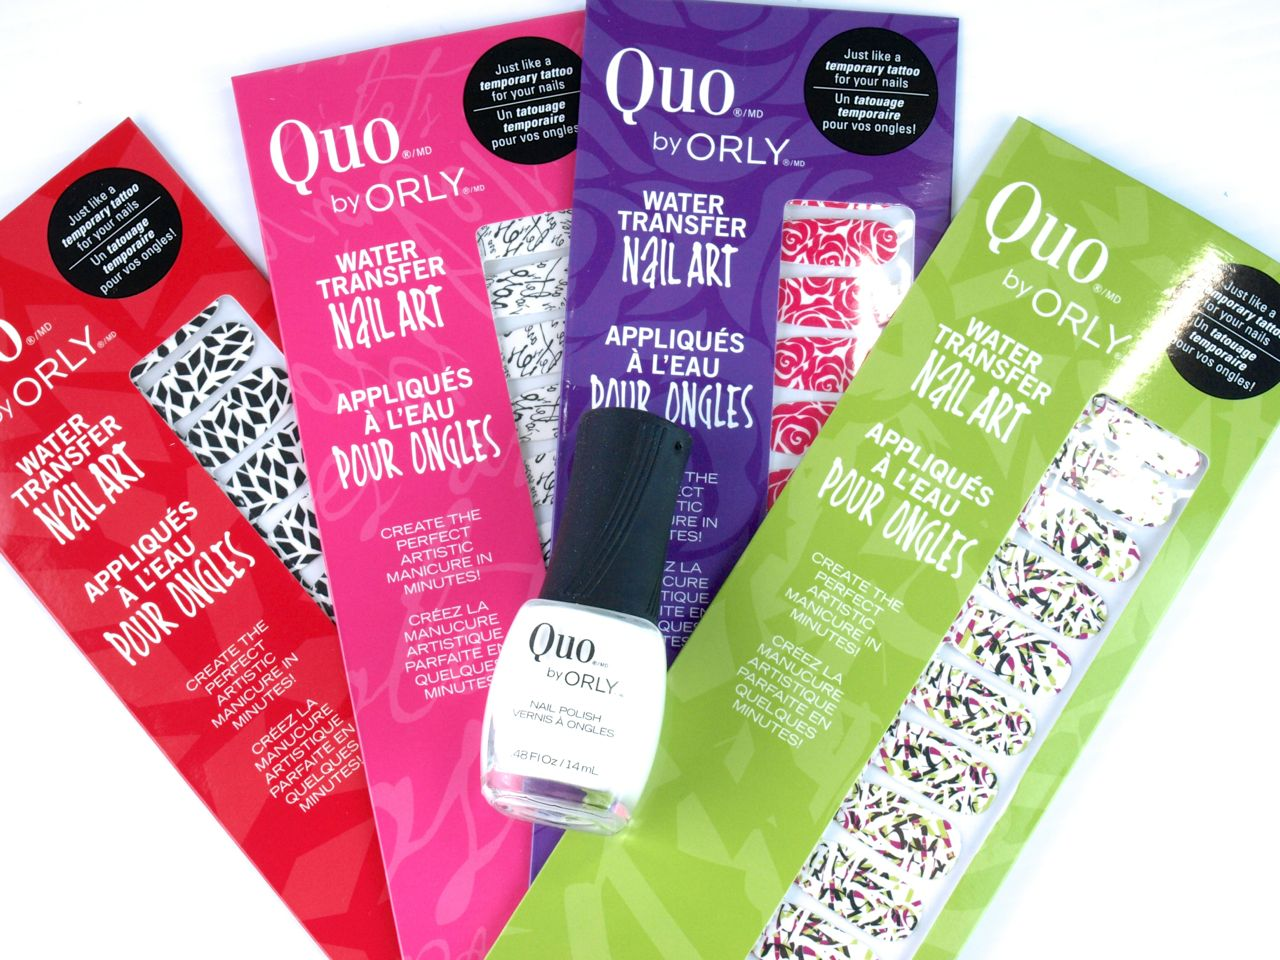 """Quo by Orly Water Transfer Nail Art in """"Mischief"""": Review and Swatches"""